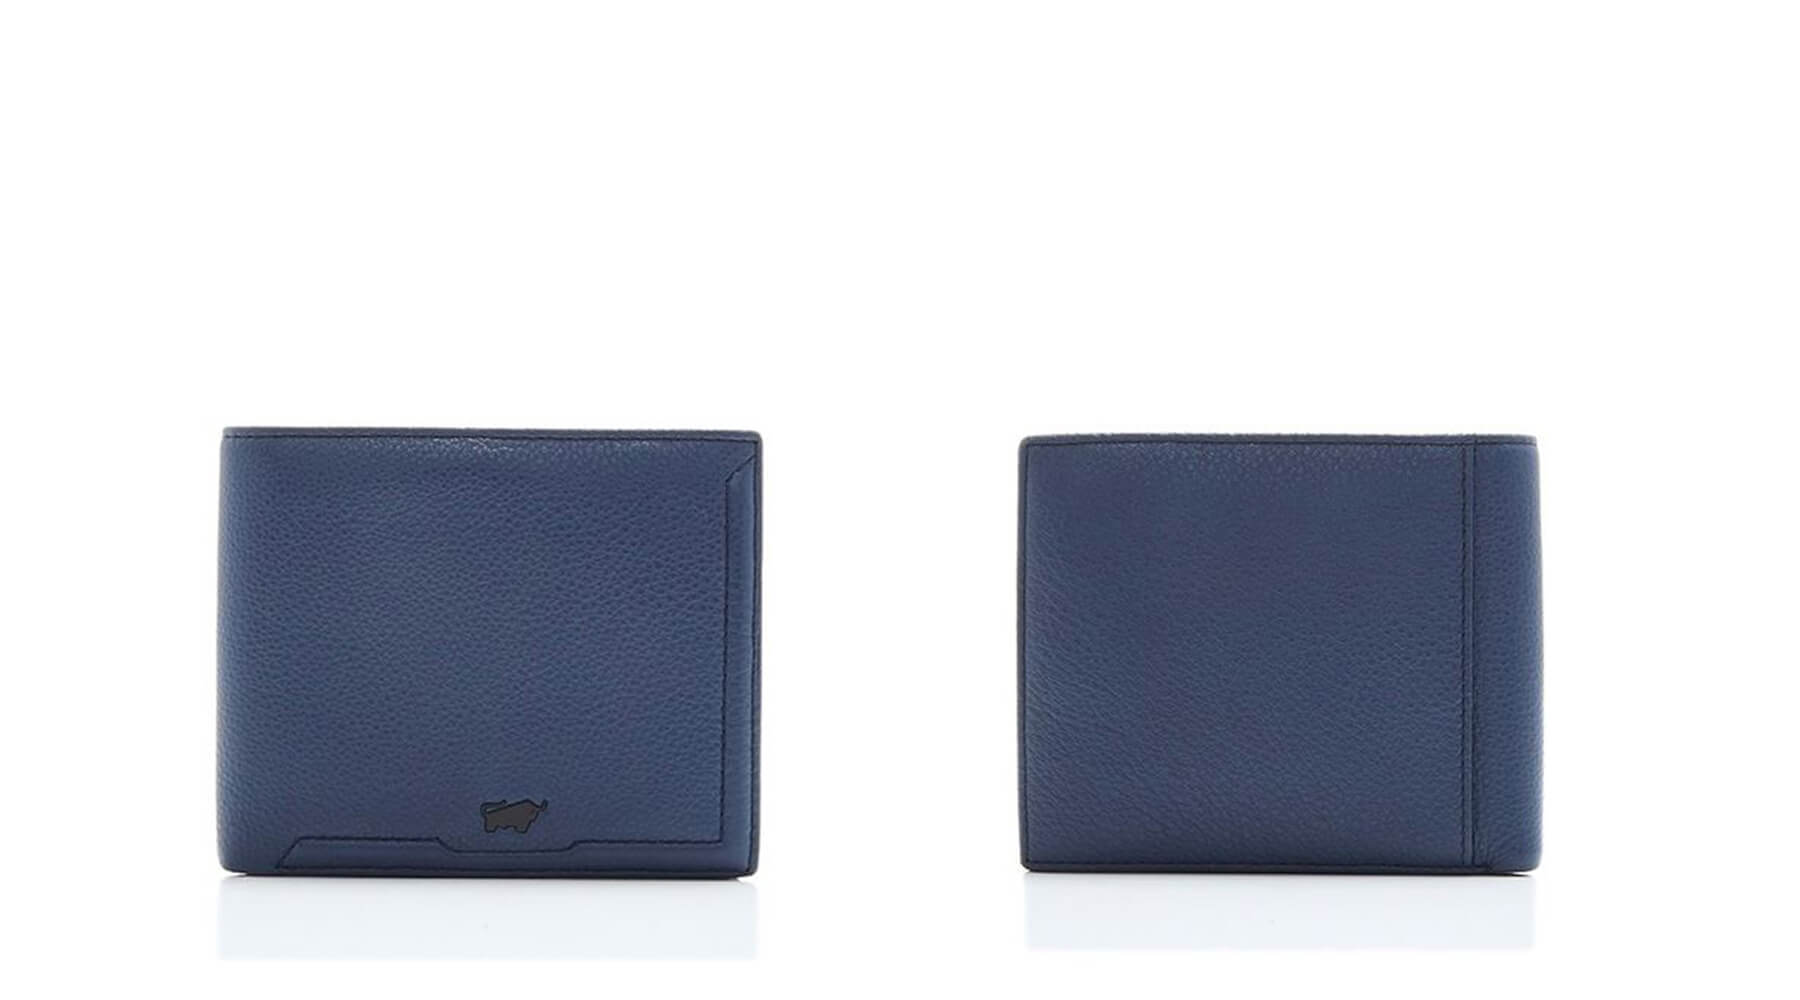 Braun Buffel Jimmy Flap-Up Wallet With Coin Compartment In Ocean